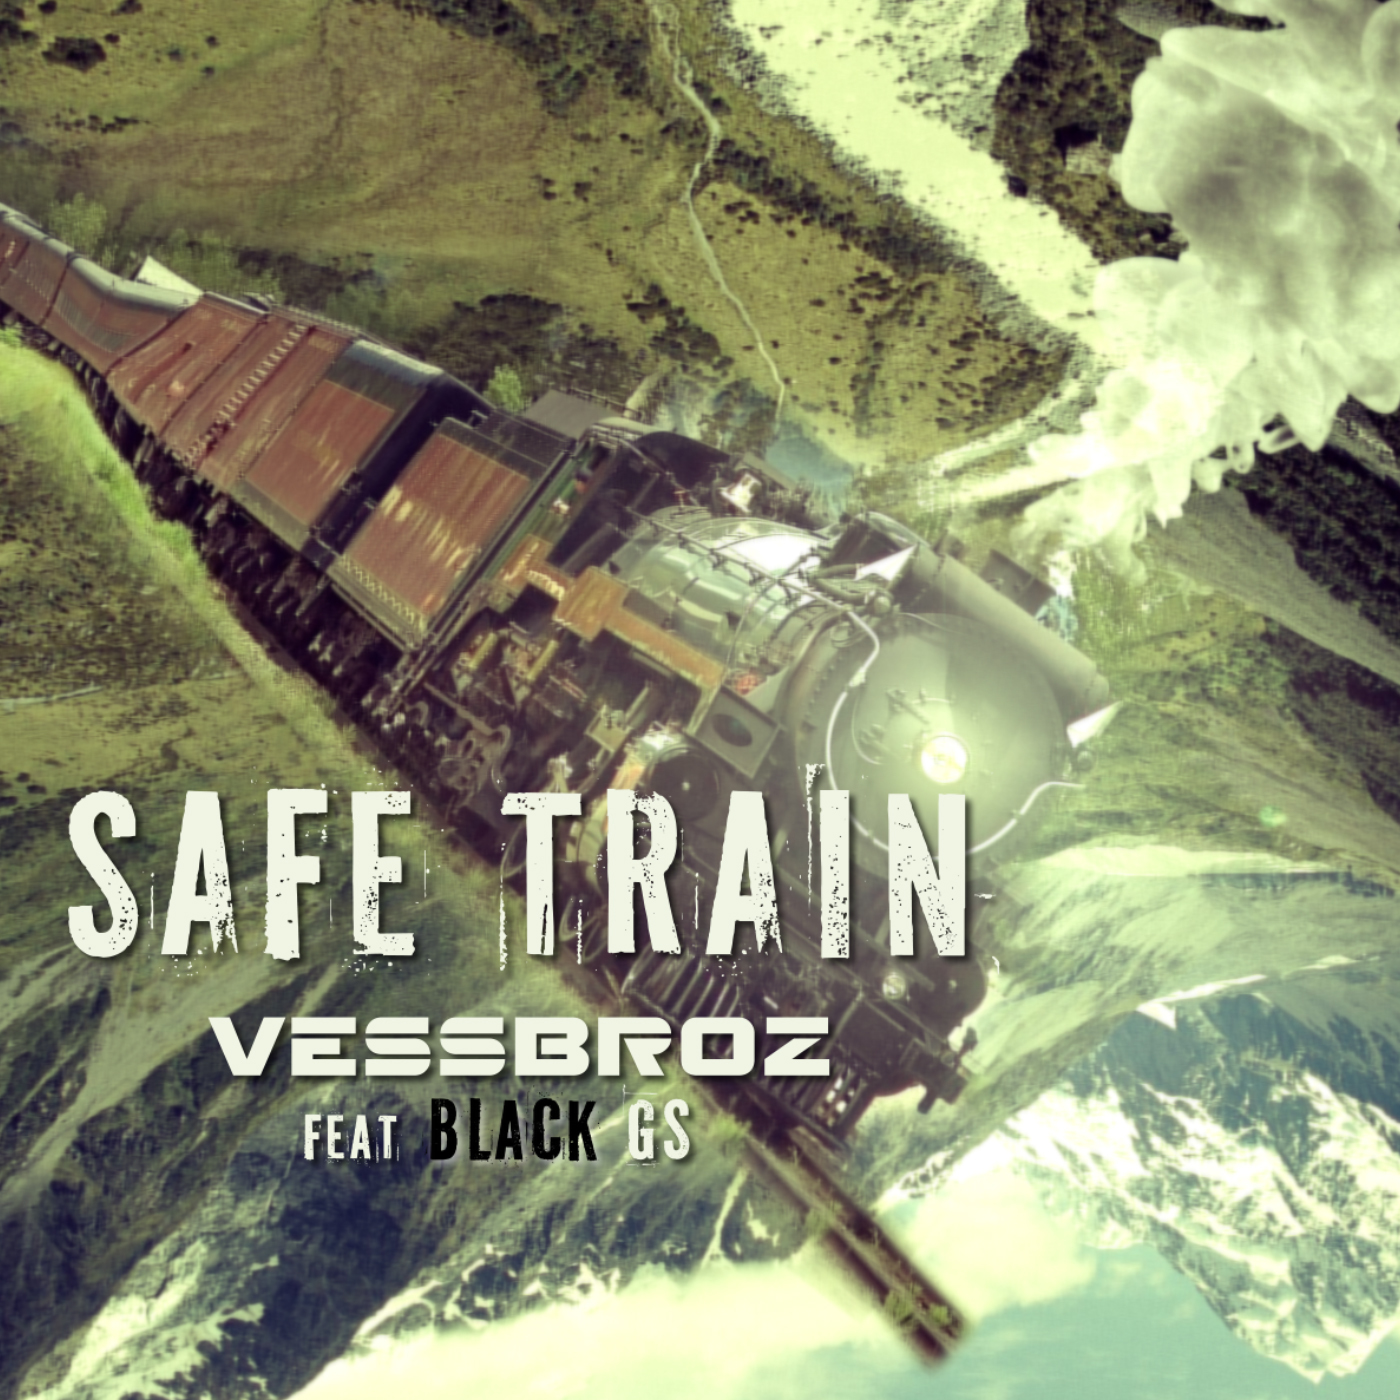 Vessbroz- Safe Train